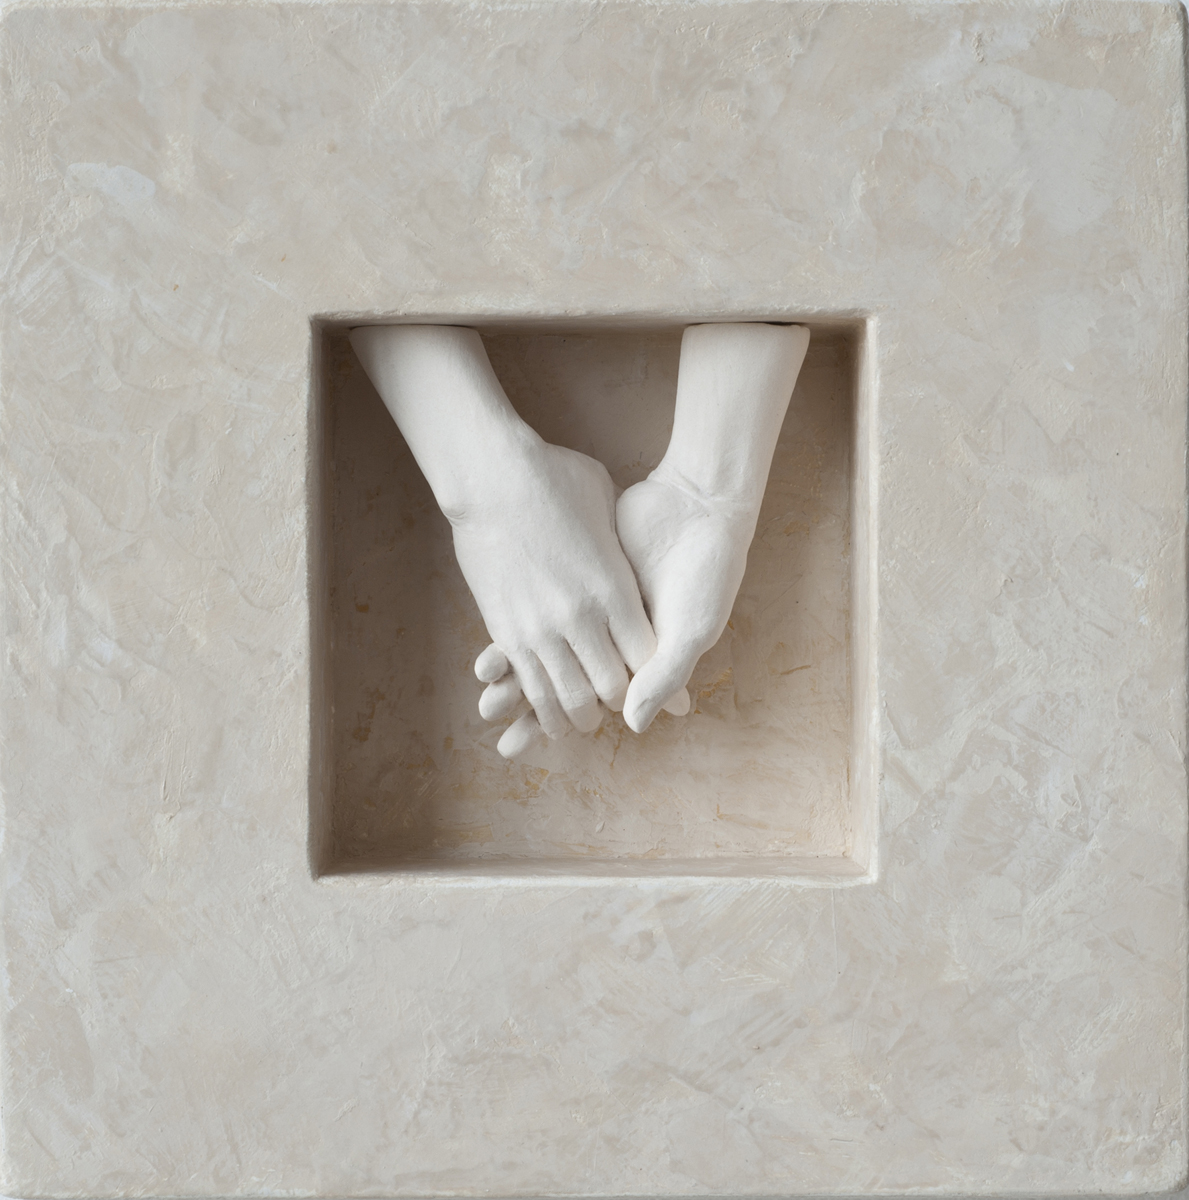 """HOLDING HANDS, Porcelain, Wood, Plaster and Paint, 7 1/2 x 7 1/2 x 2"""""""